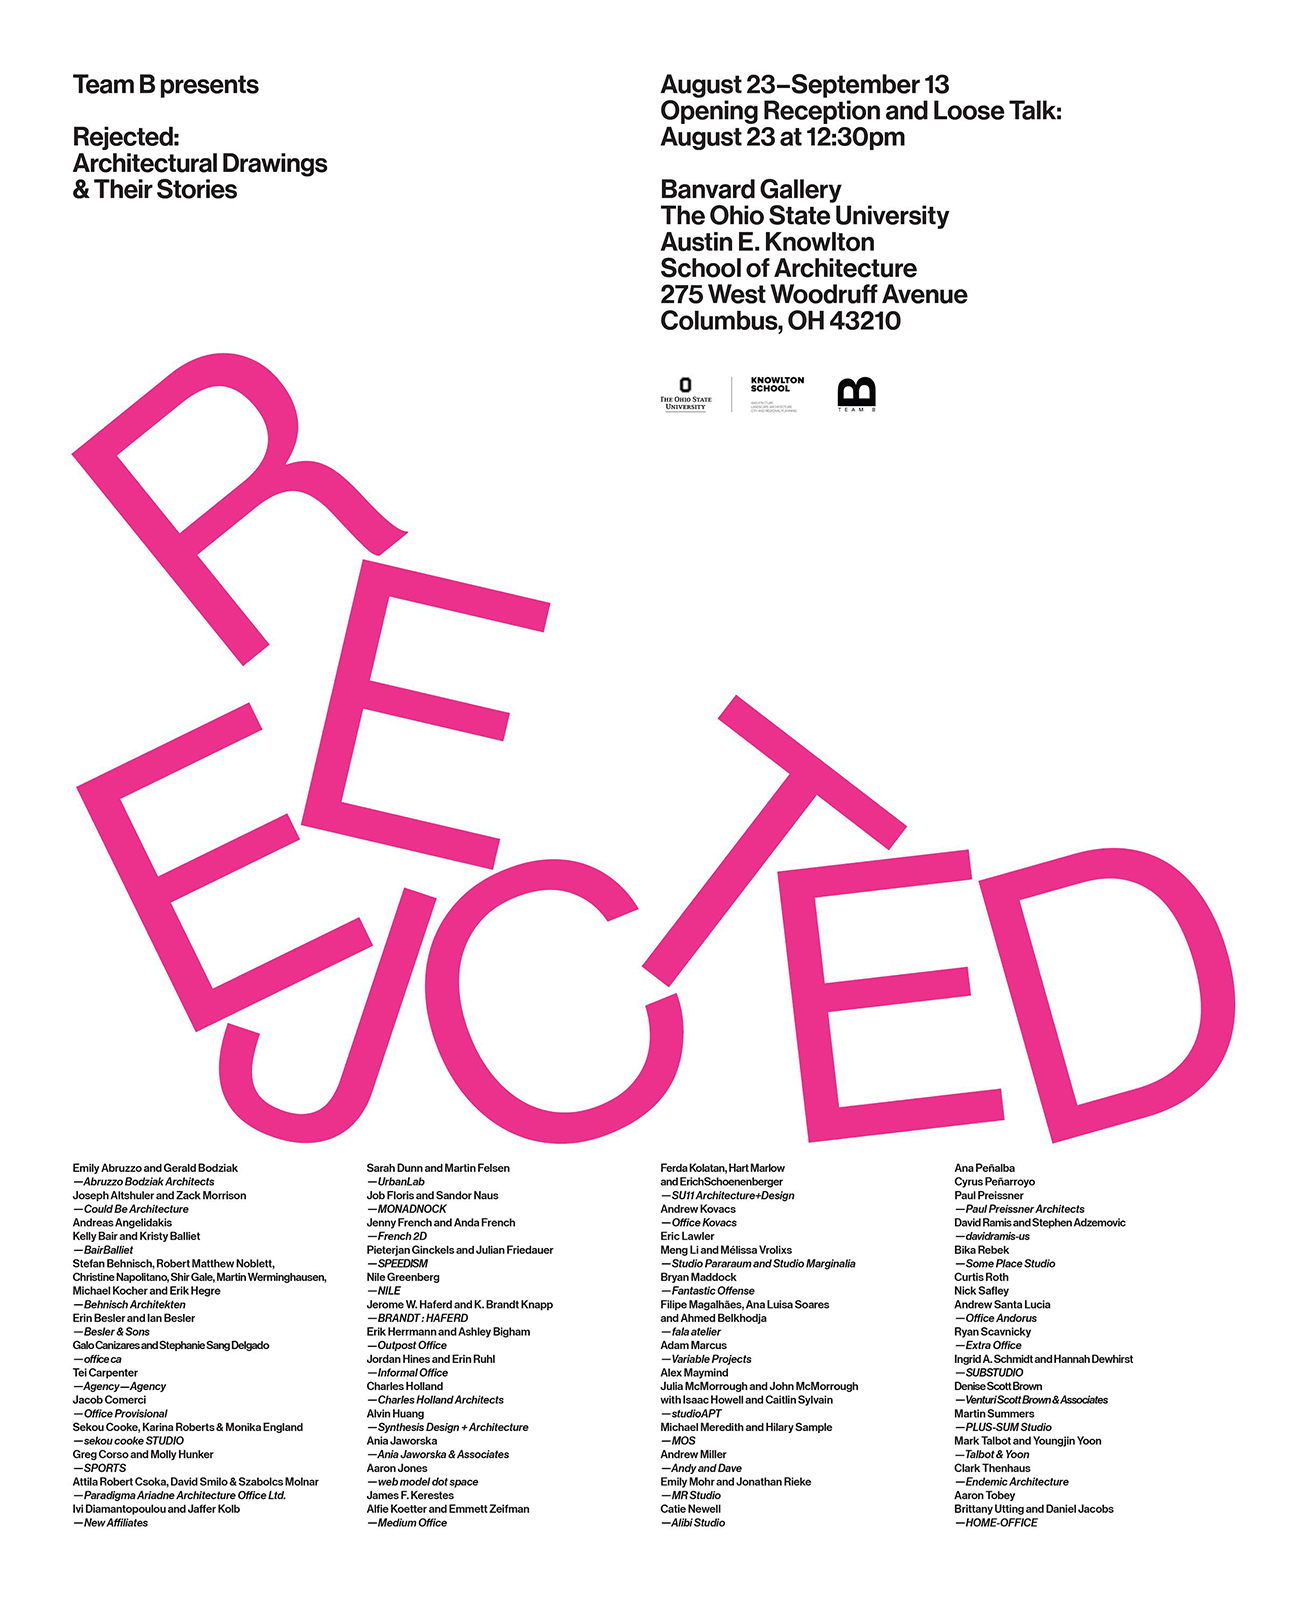 Poster from Rejected: Architectural Drawings & Their Stories put on by Team B and Knowlton School of Architecture